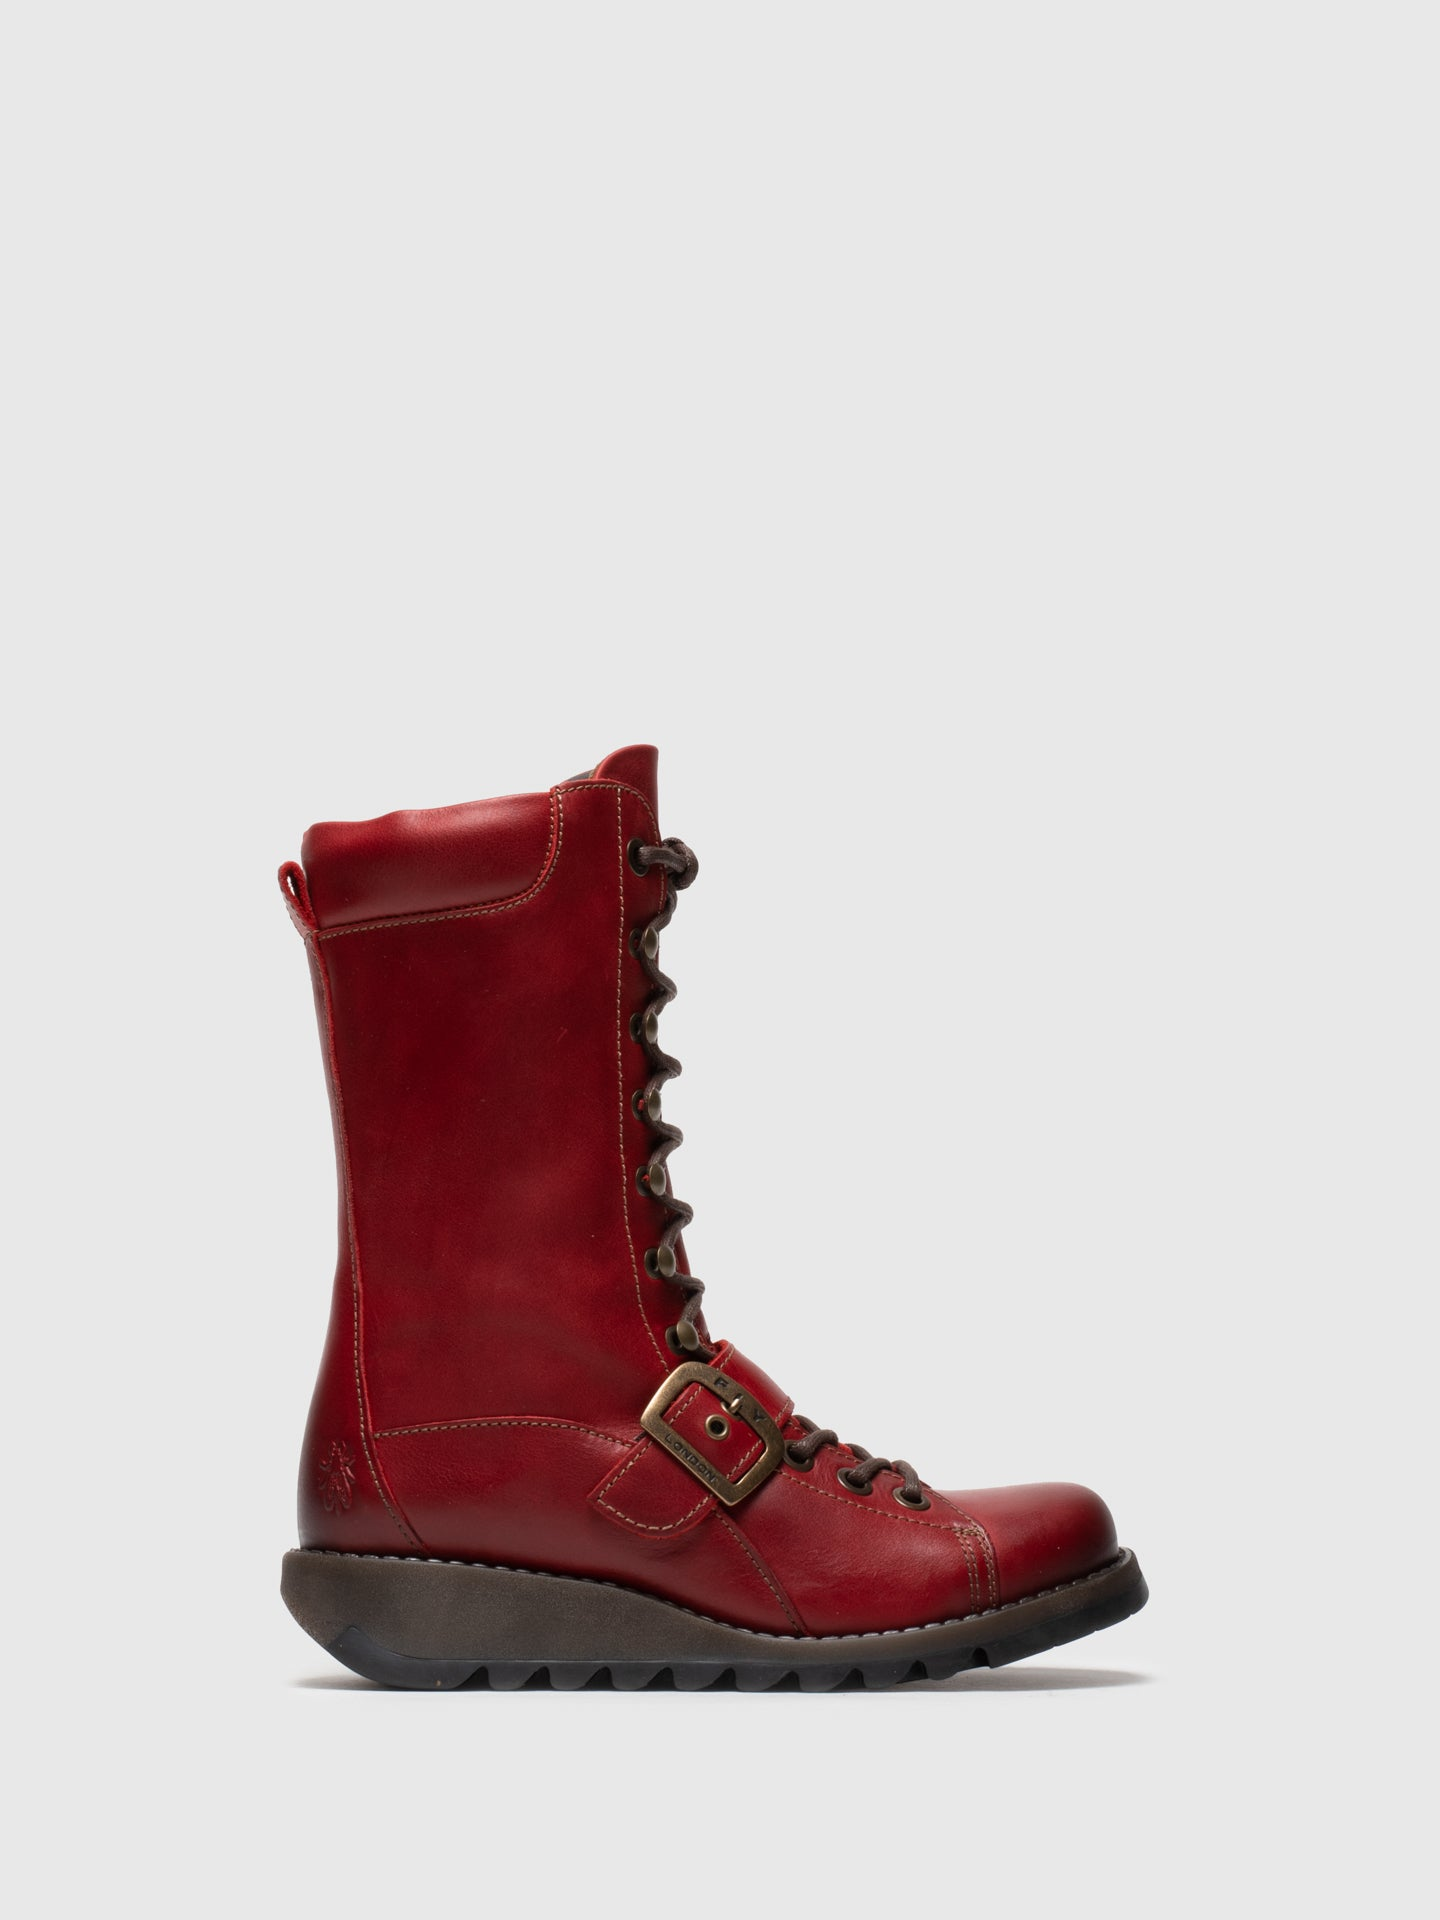 Fly London Red Lace-up Boots